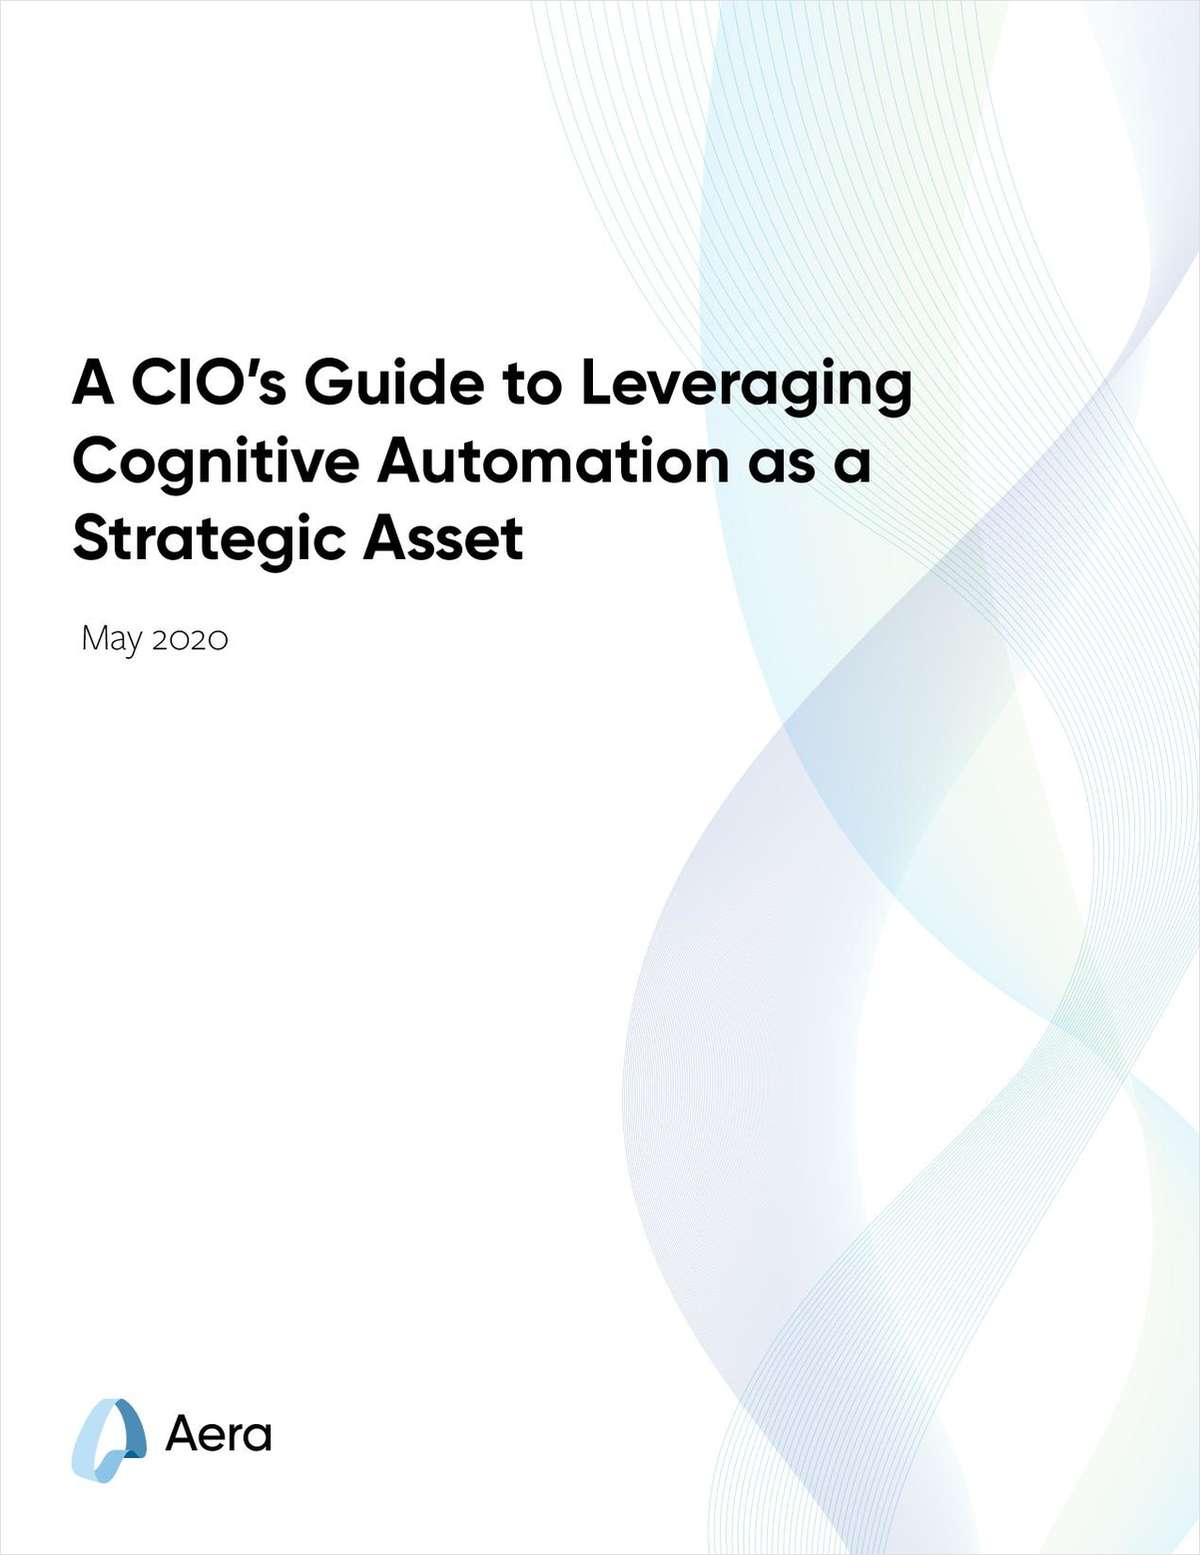 A CIO's Guide to Leveraging Cognitive Automation as a Strategic Asset